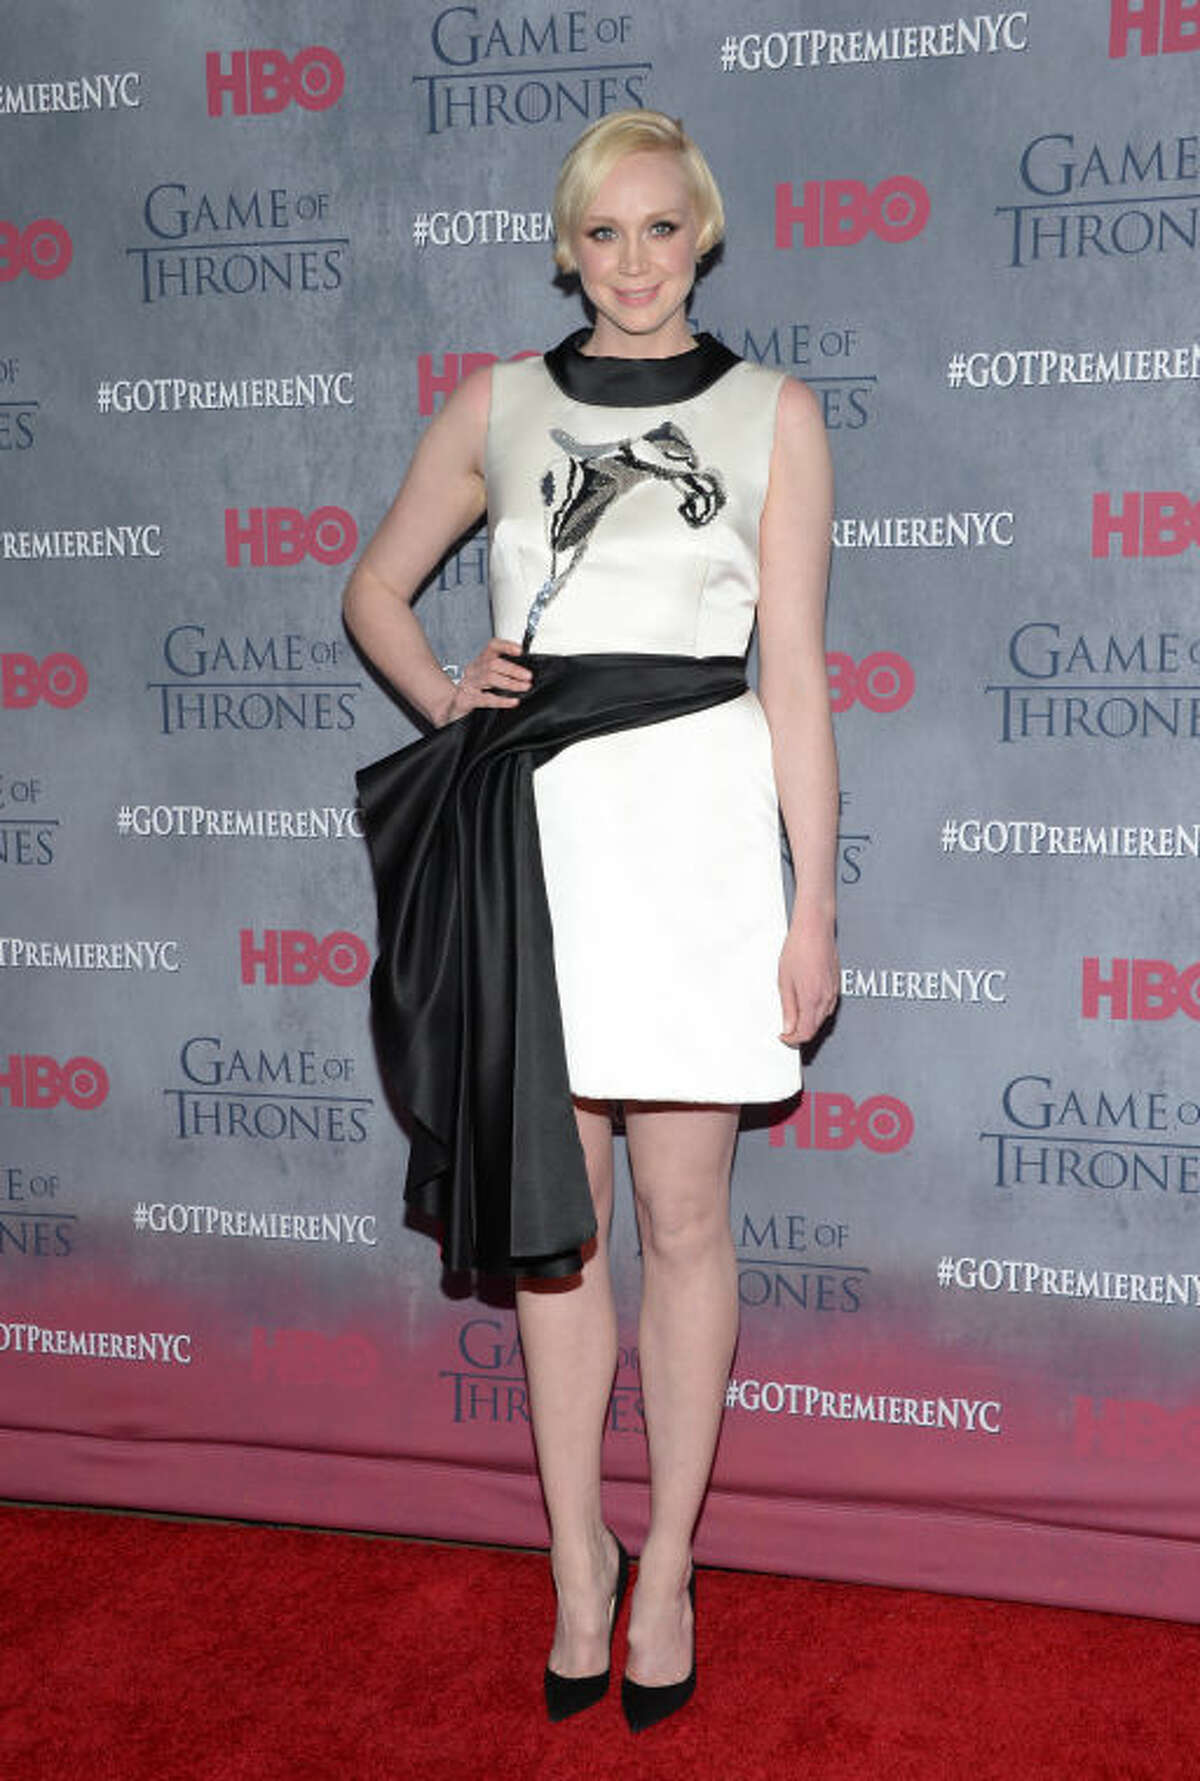 """Actress Gwendoline Christie attends HBO's """"Game of Thrones"""" fourth season premiere at Avery Fisher Hall on Tuesday, March 18, 2014 in New York. (Photo by Evan Agostini/Invision/AP)"""